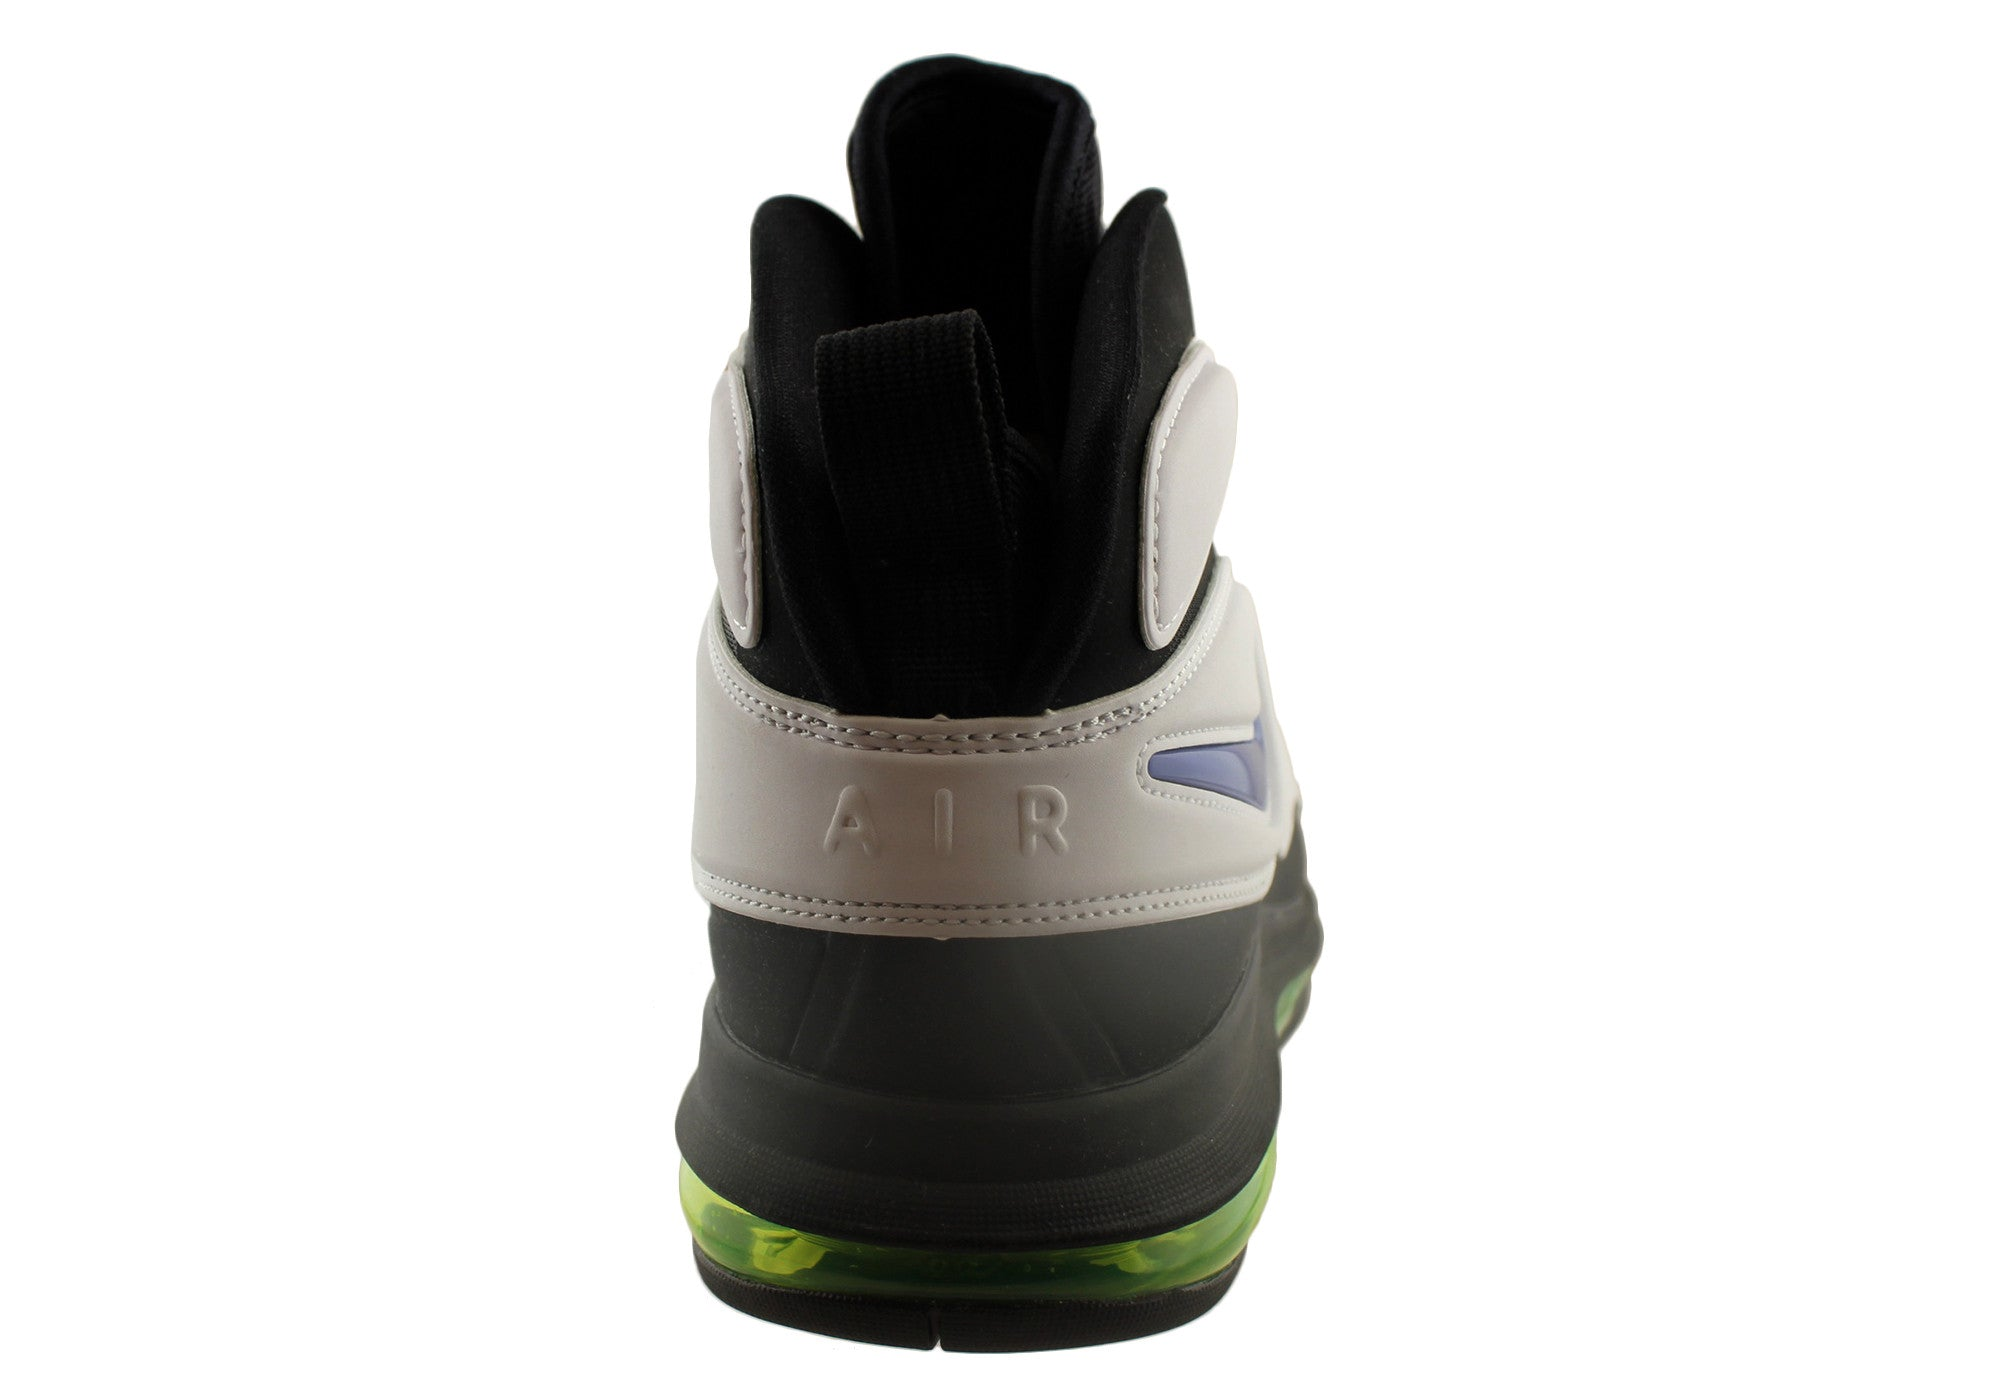 Nike Air Max Sq Uptempo Zm Mens Basketball Boots